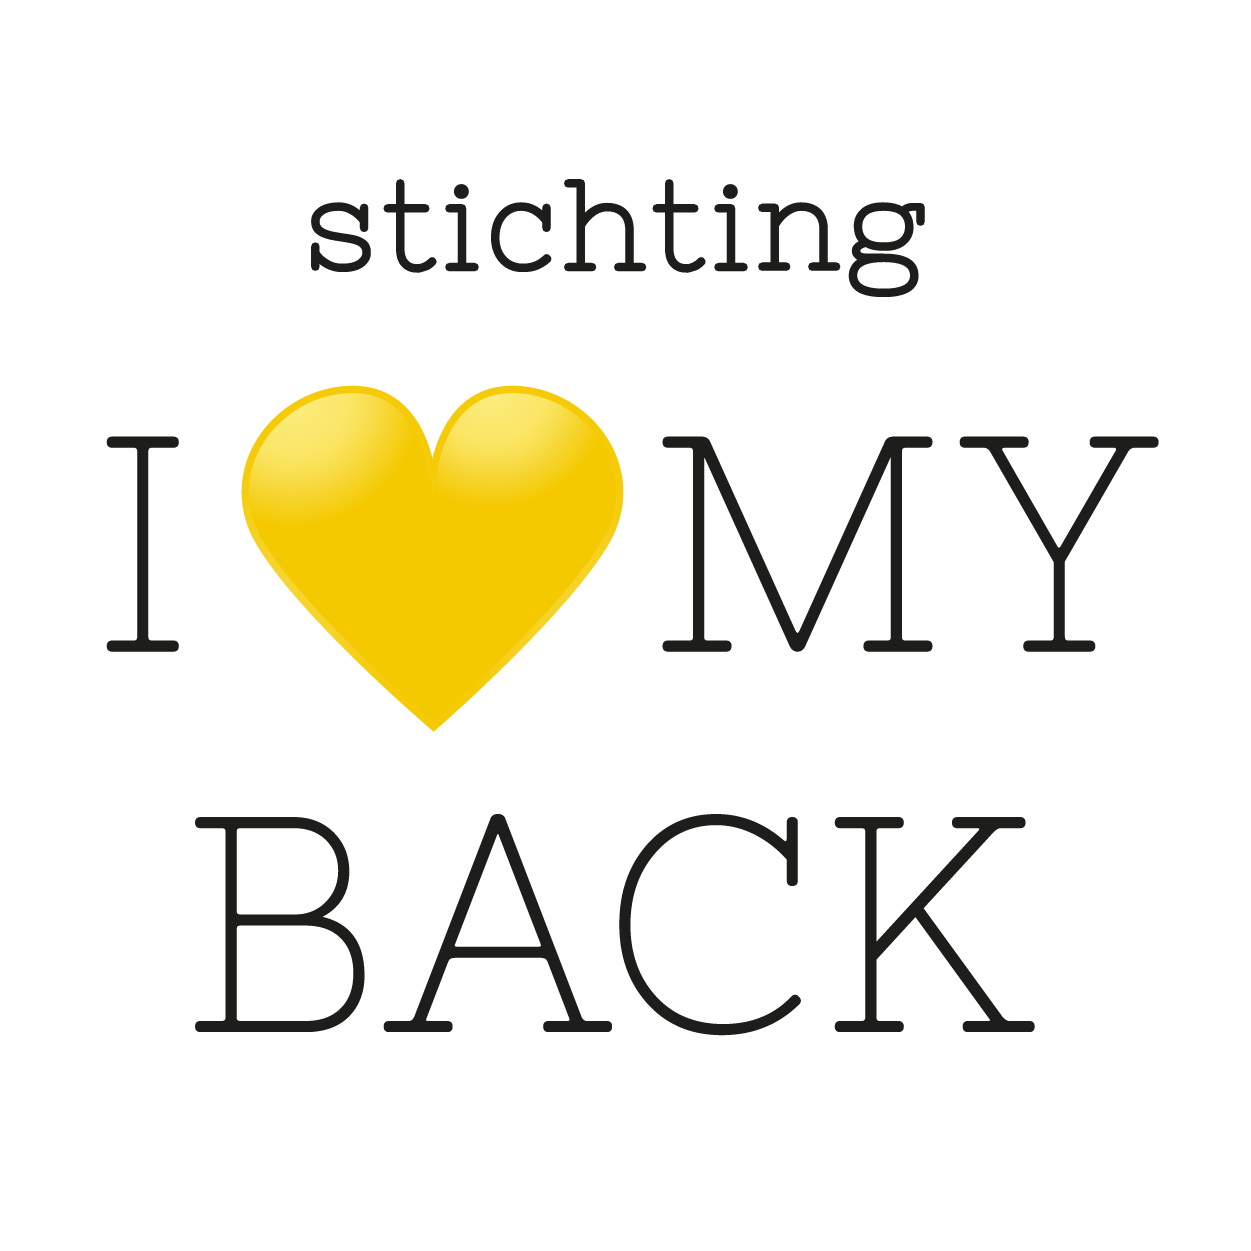 Stichting i love my back